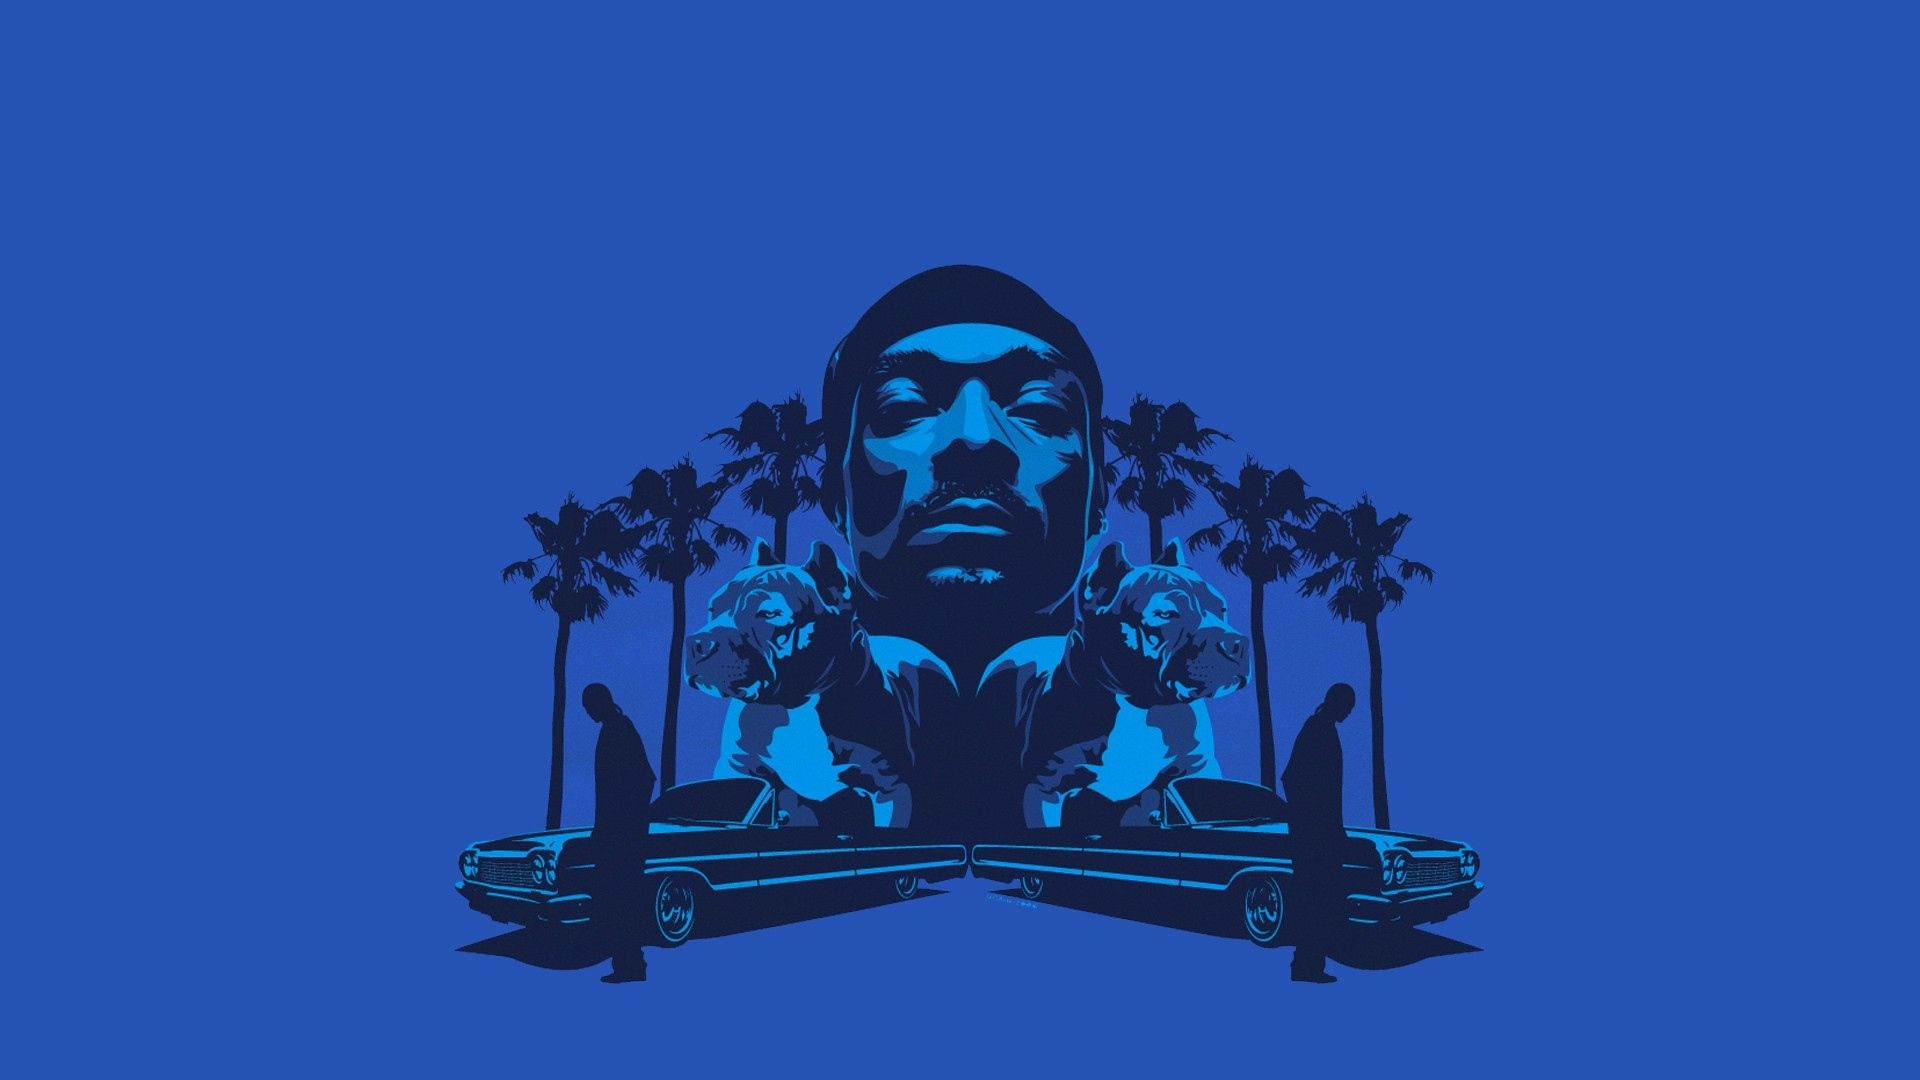 Download Wallpaper 1920x1080 Snoop Dogg Dogs Trees Cars Face Full Hd 1080p Hd Background Snoop Dogg Dog Tree Snoop